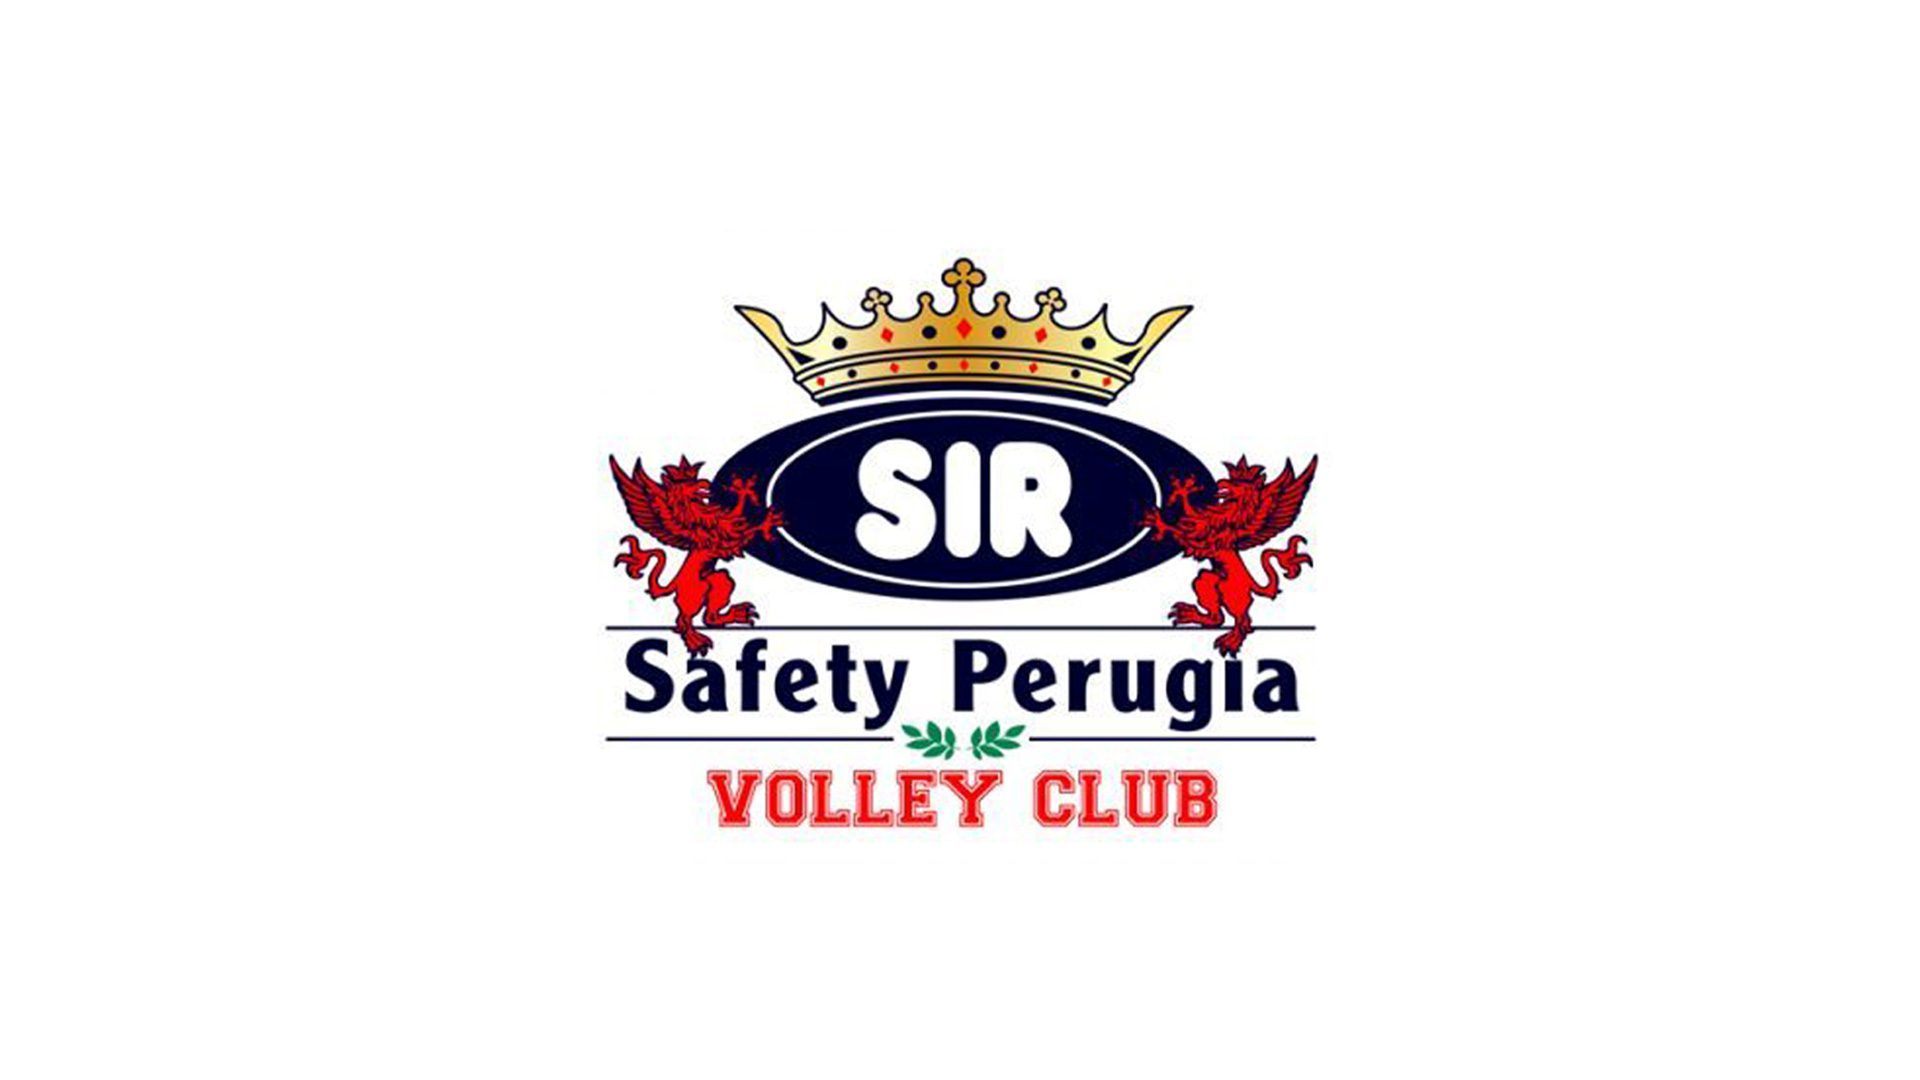 Spazio 4 Serramenti sponsor di Sir Safety Perugia Volley Perugia